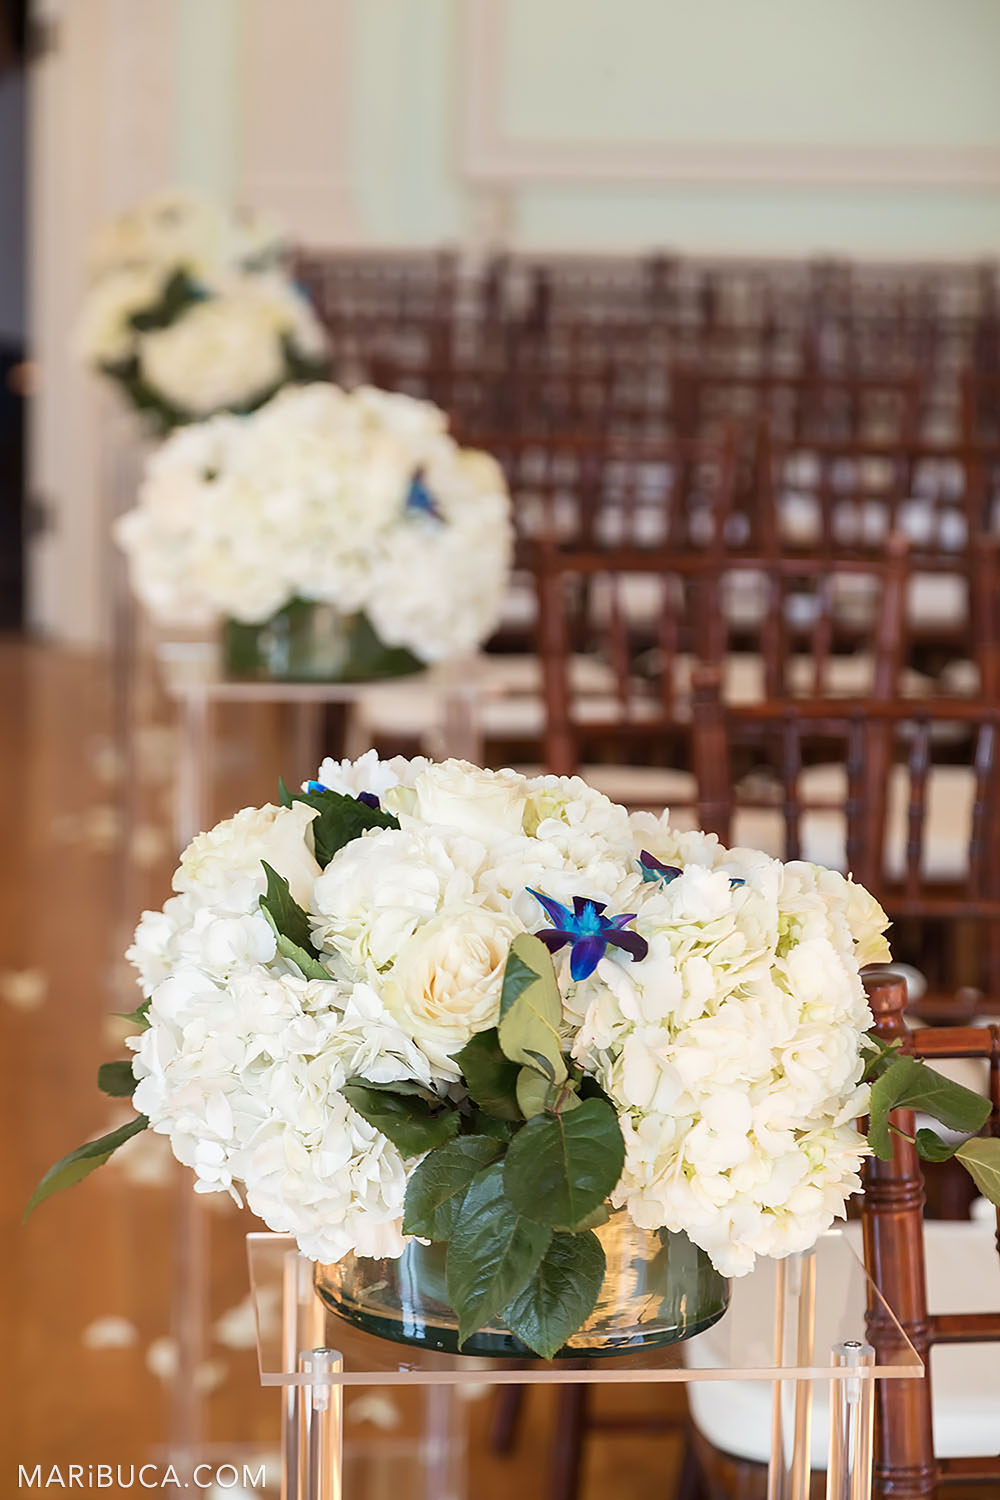 Wedding ceremony decorations: white bouquets and brown wooden chairs in the Dining room, Kohl Mansion, Burlingame